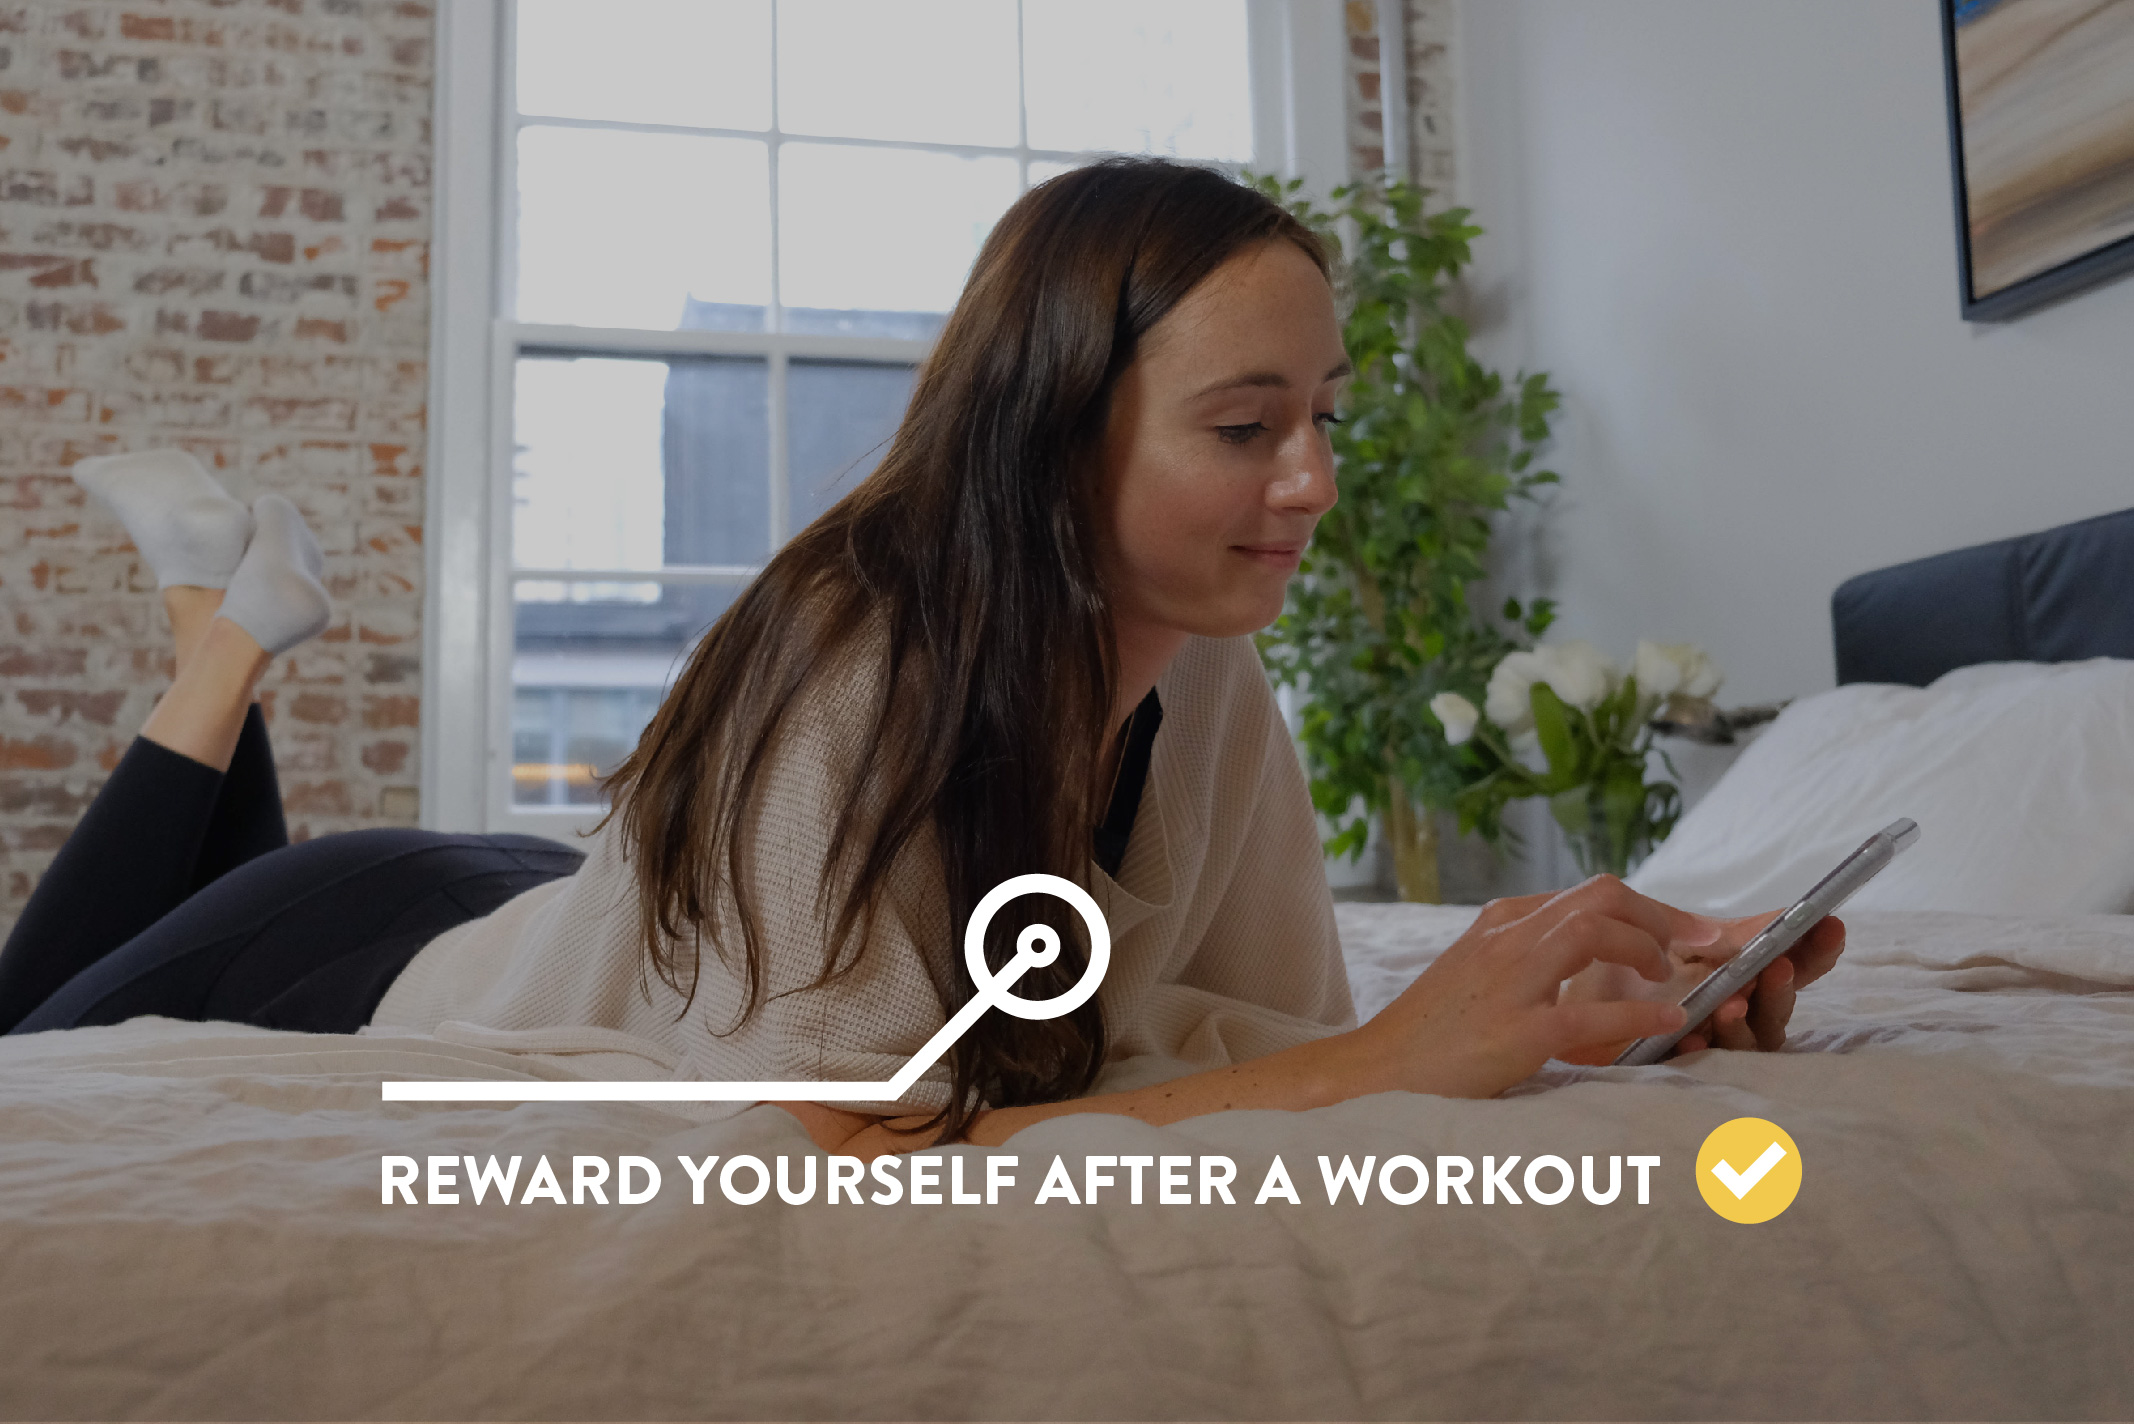 Habit Coaching with Trainerize: Reward Yourself After a Workout